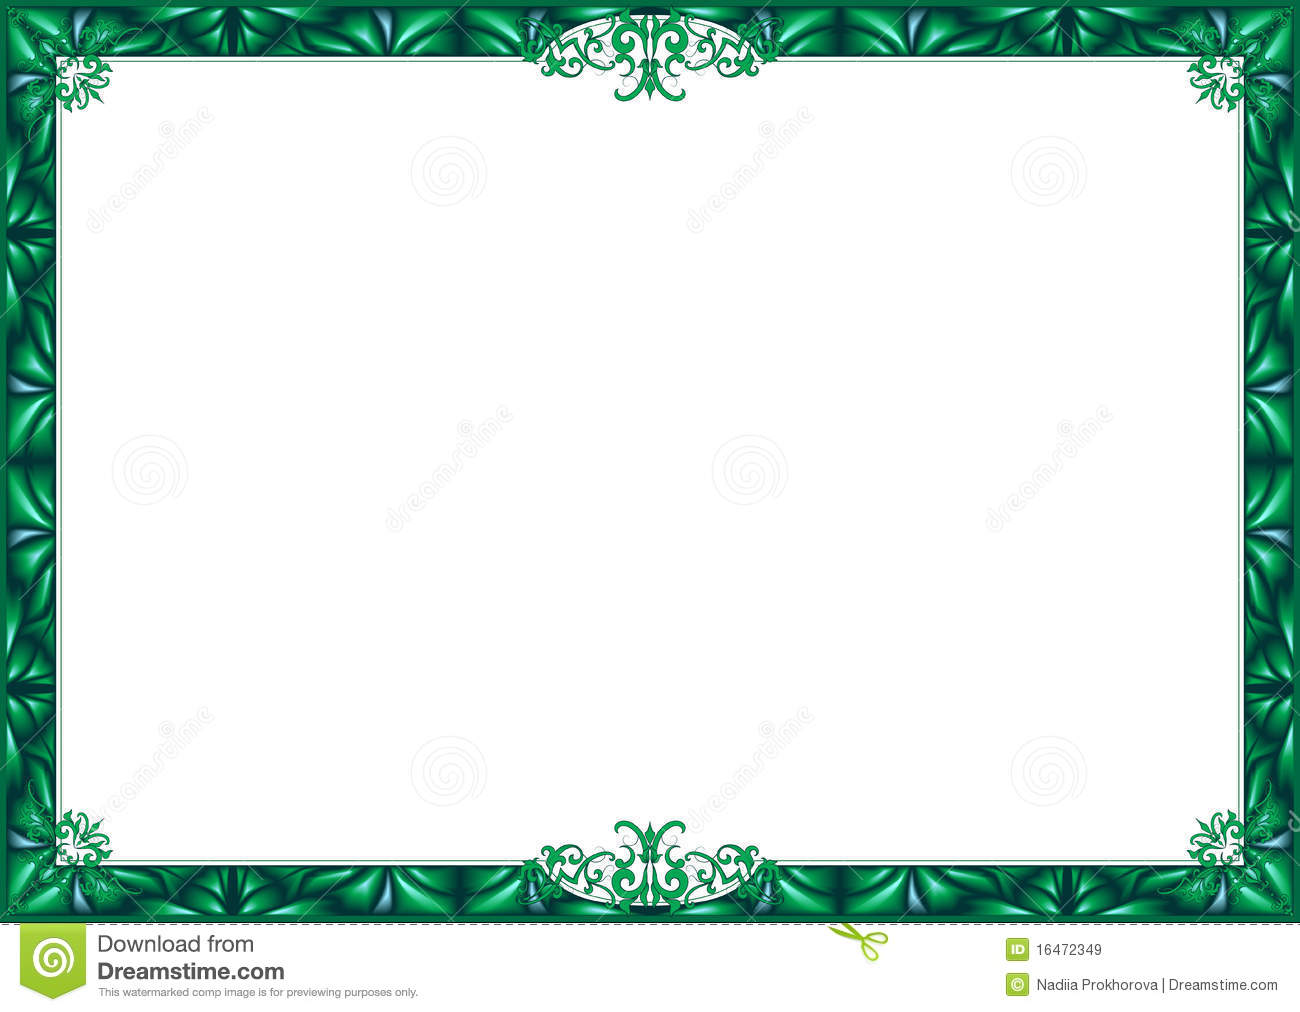 green frame royalty free stock images image 16472349 music clipart borders free music clip art borders free